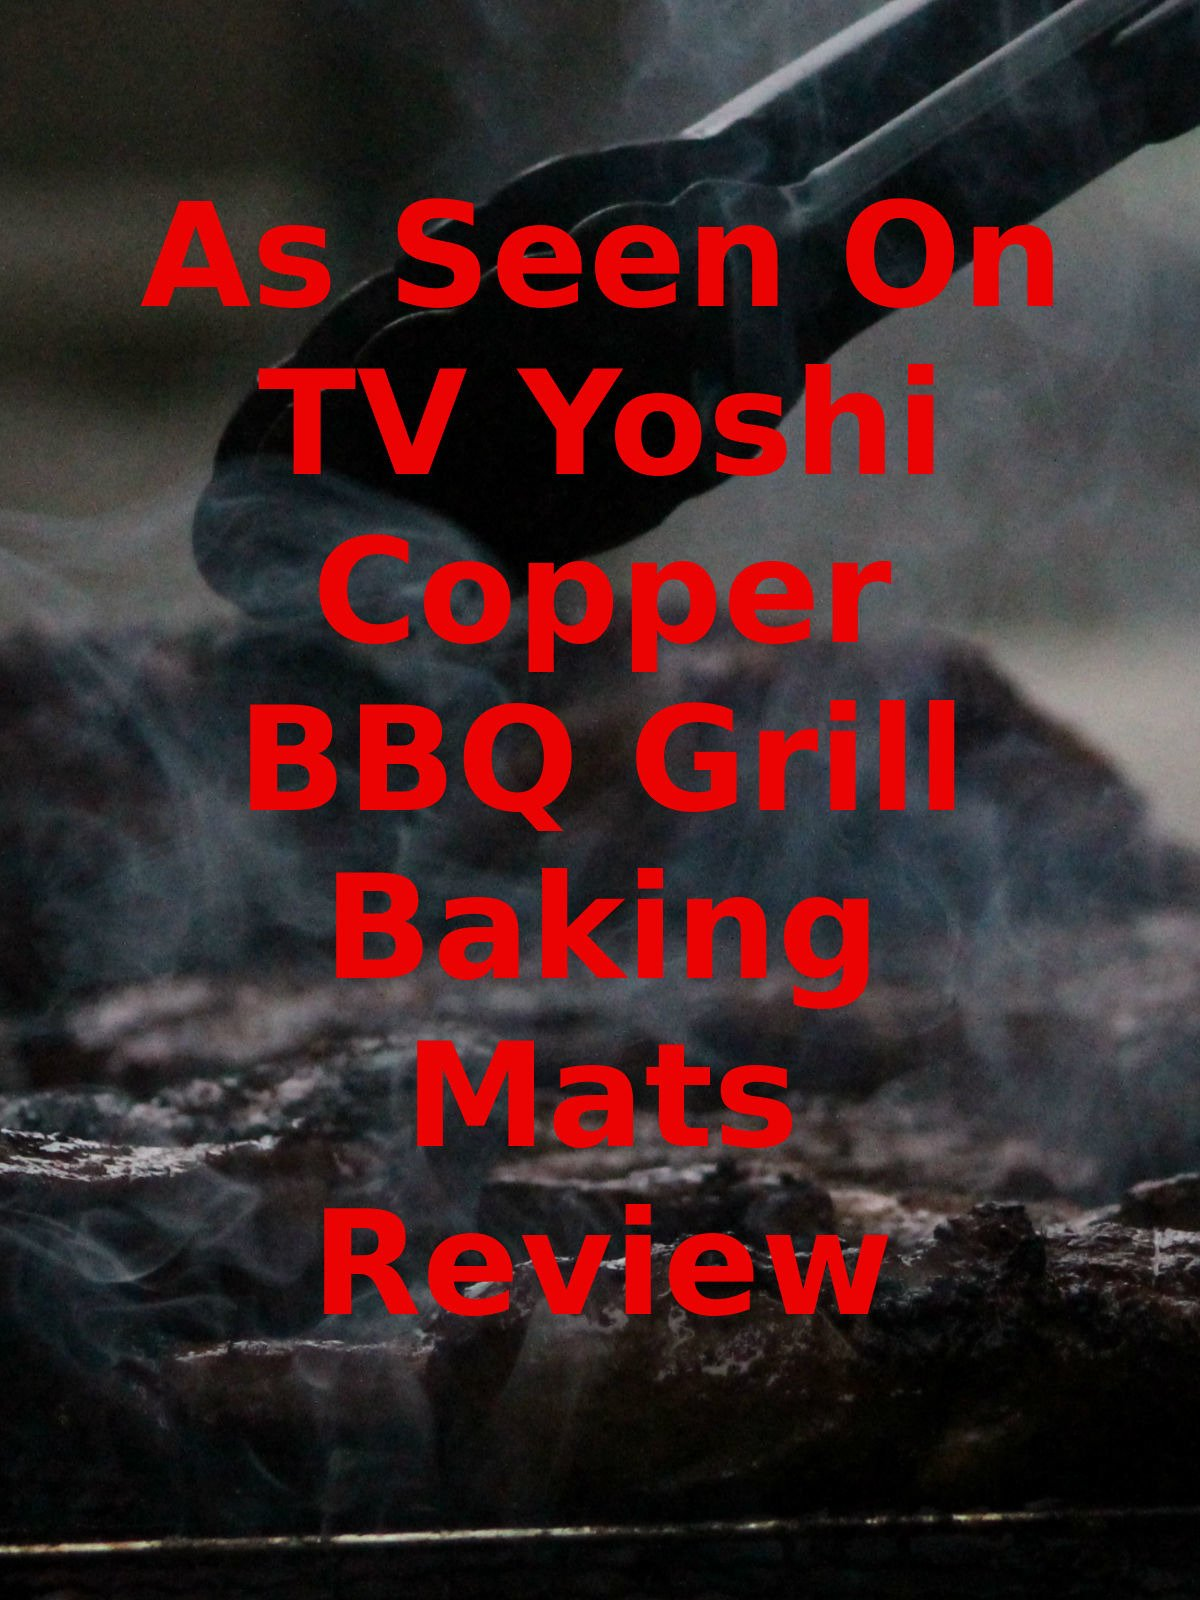 Review: As Seen On TV Yoshi Copper BBQ Grill Baking Mats Review on Amazon Prime Video UK